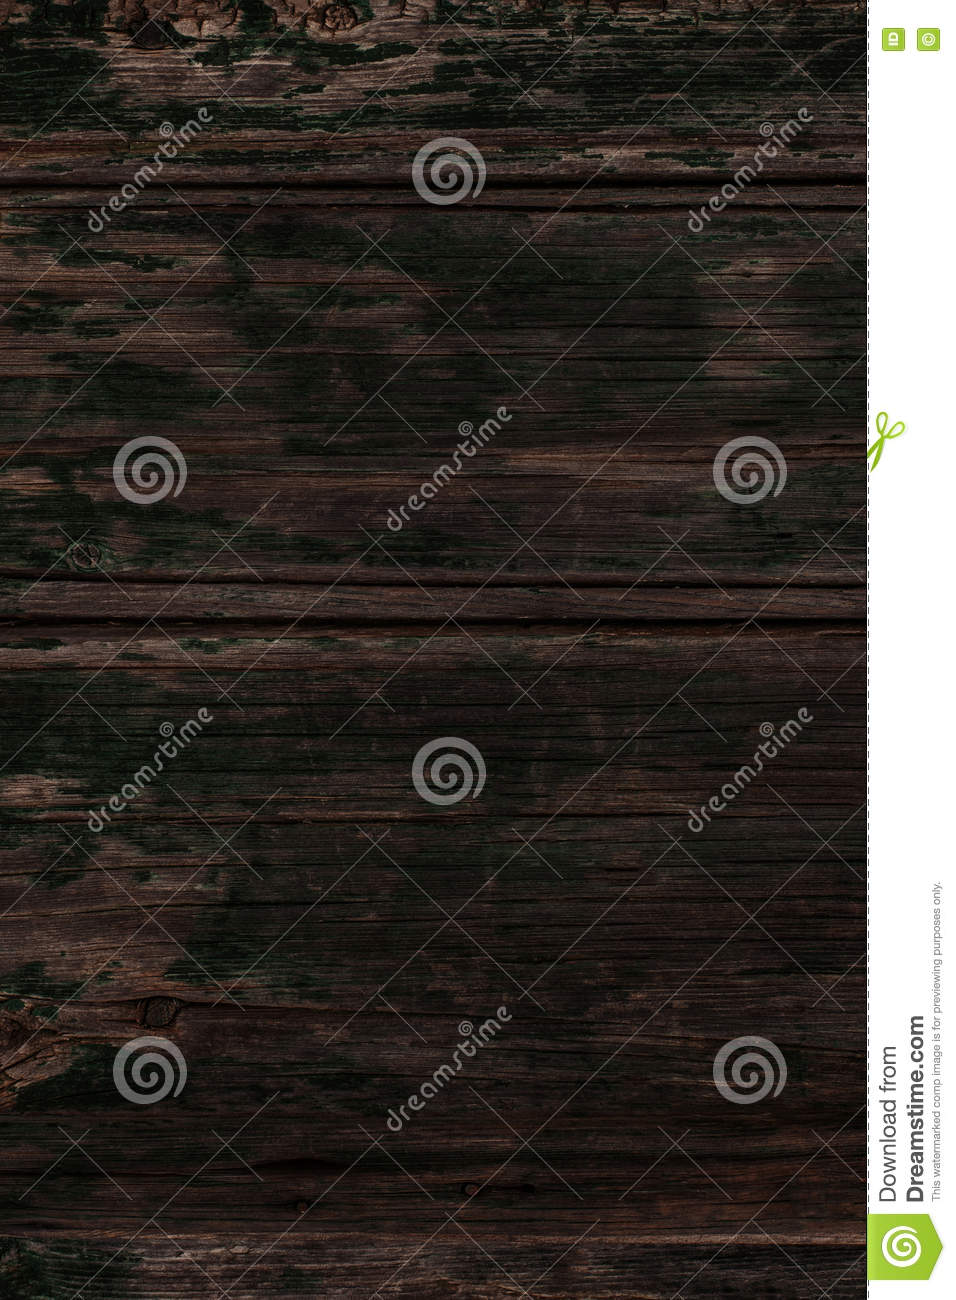 Dark Brown wood texture, close up of wooden wall. Abstract back